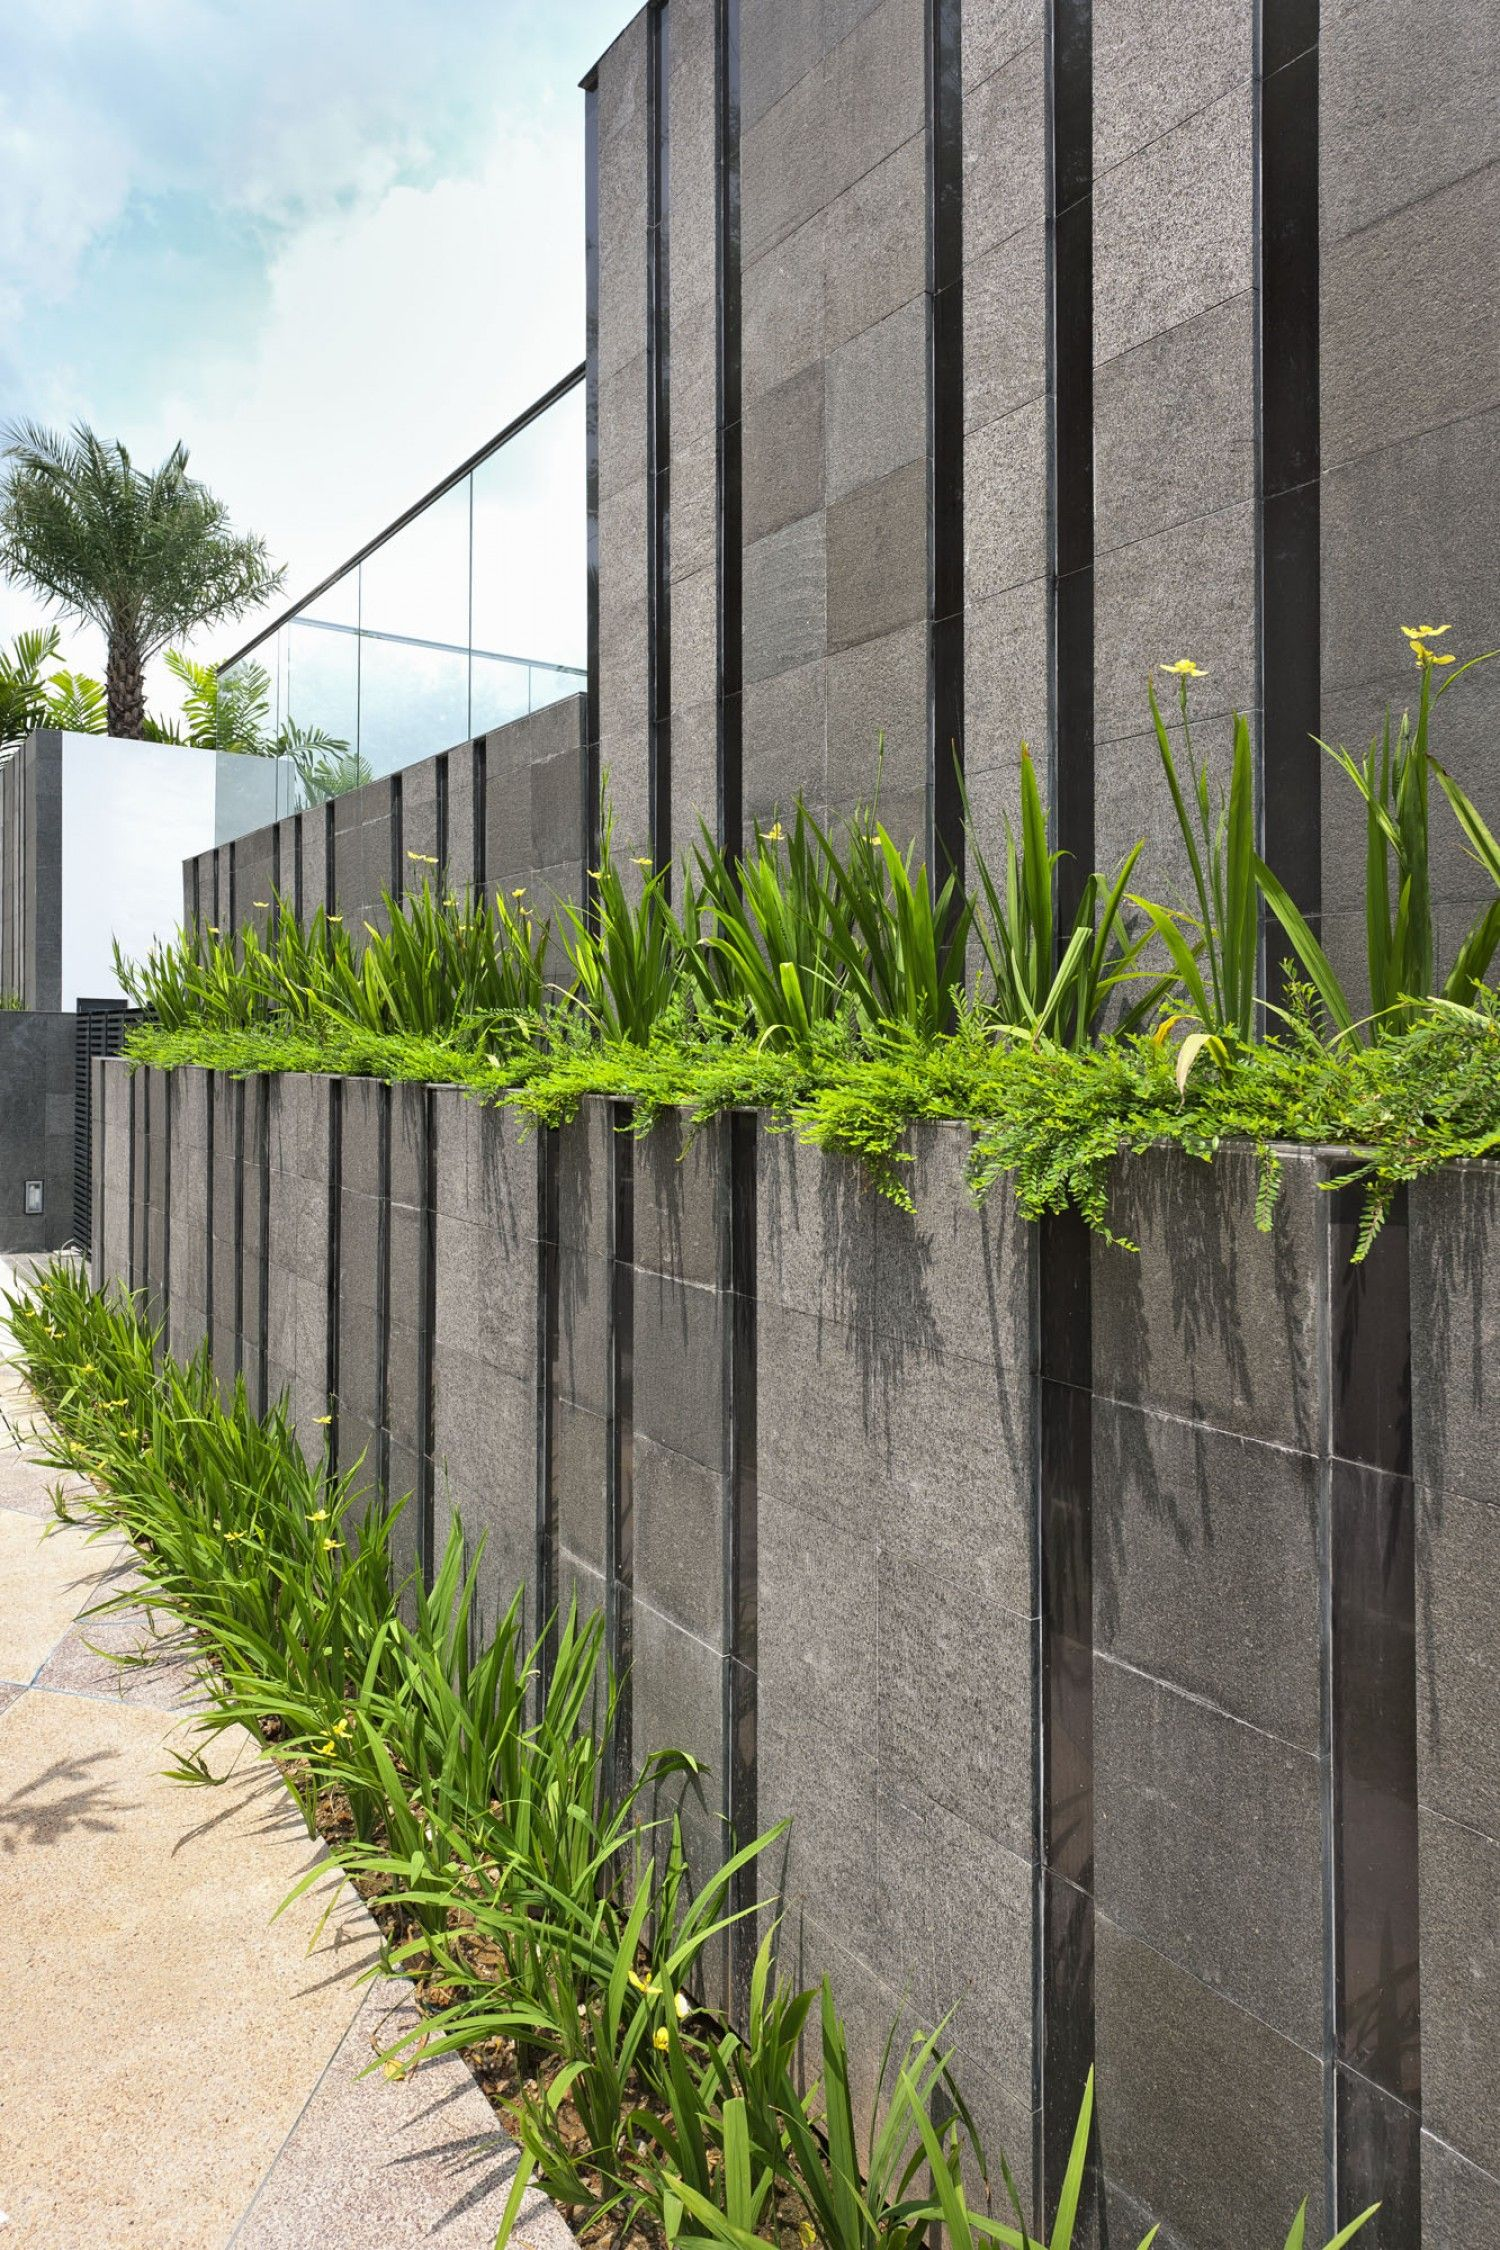 Fence Designs By Creative Boundries: Park + Associates